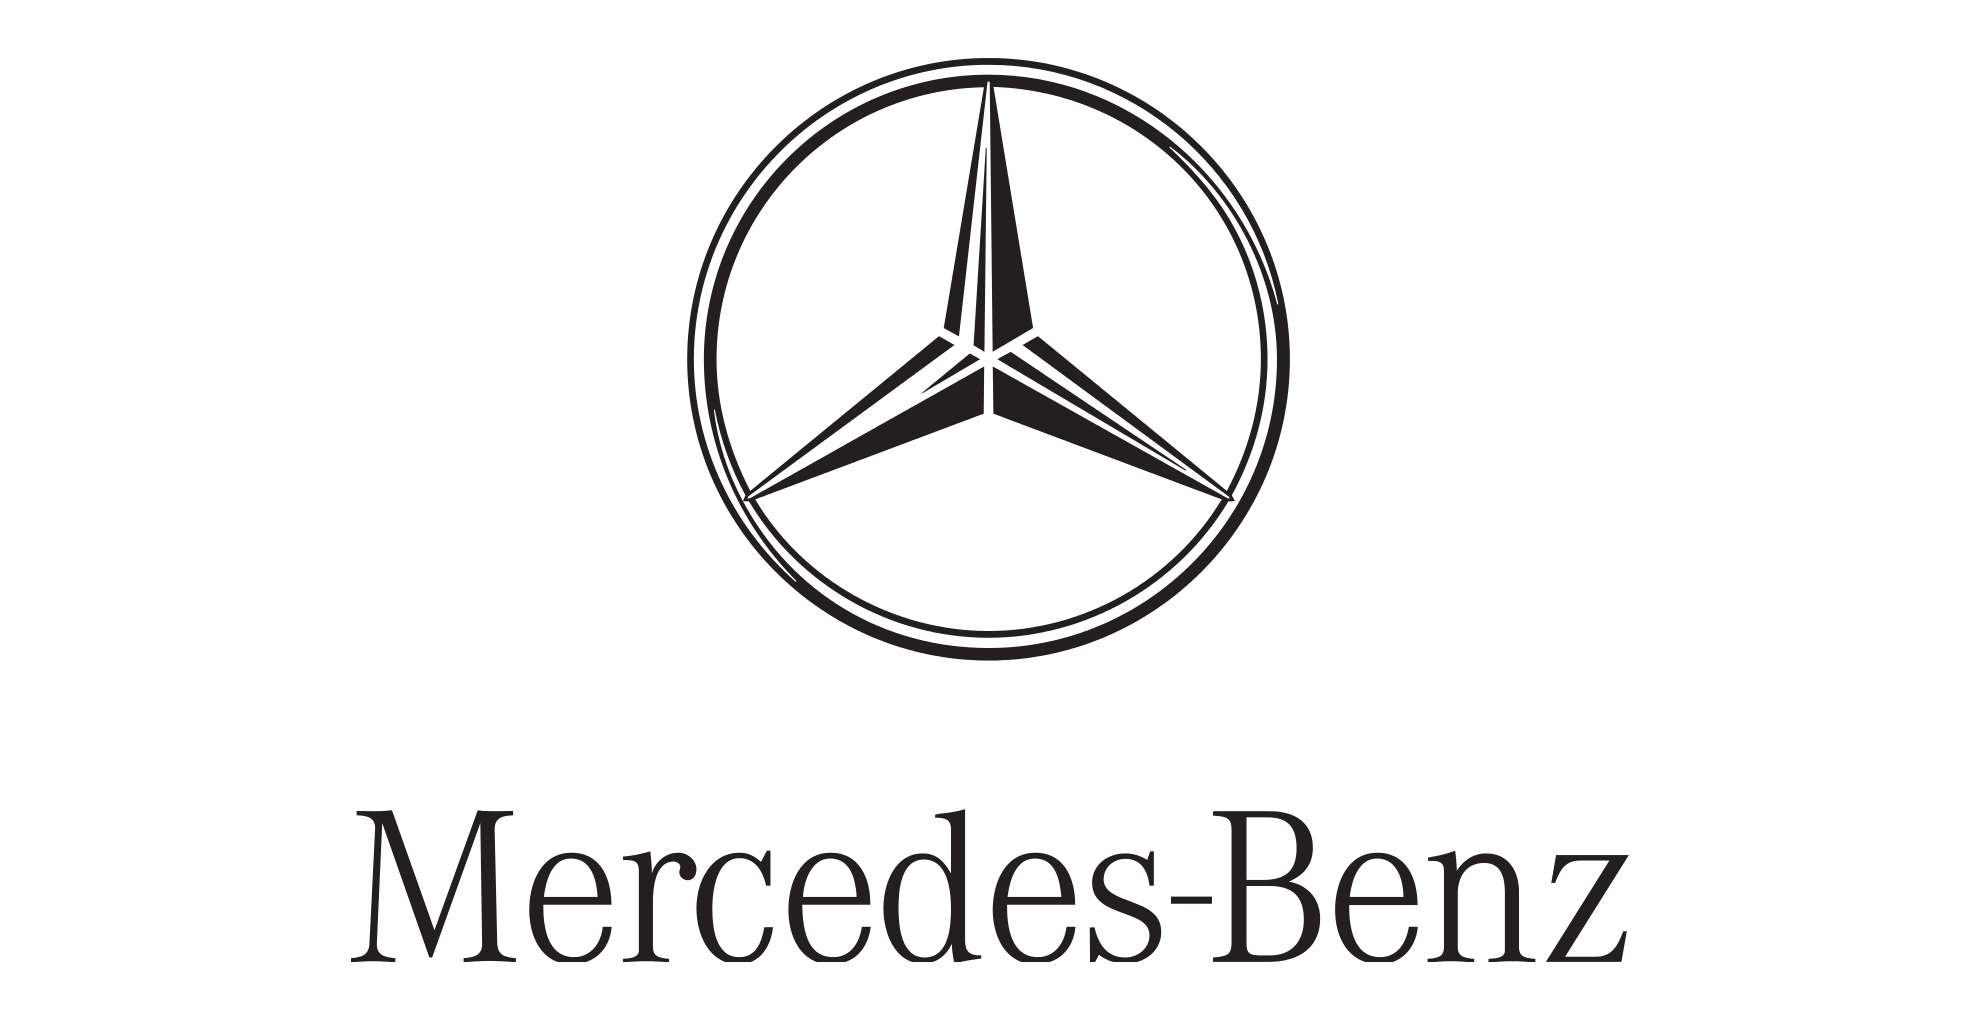 Mercedes-Benz logo (2008) 1920x1080 (HD 1080p) Mercedes-Benz Logo ...